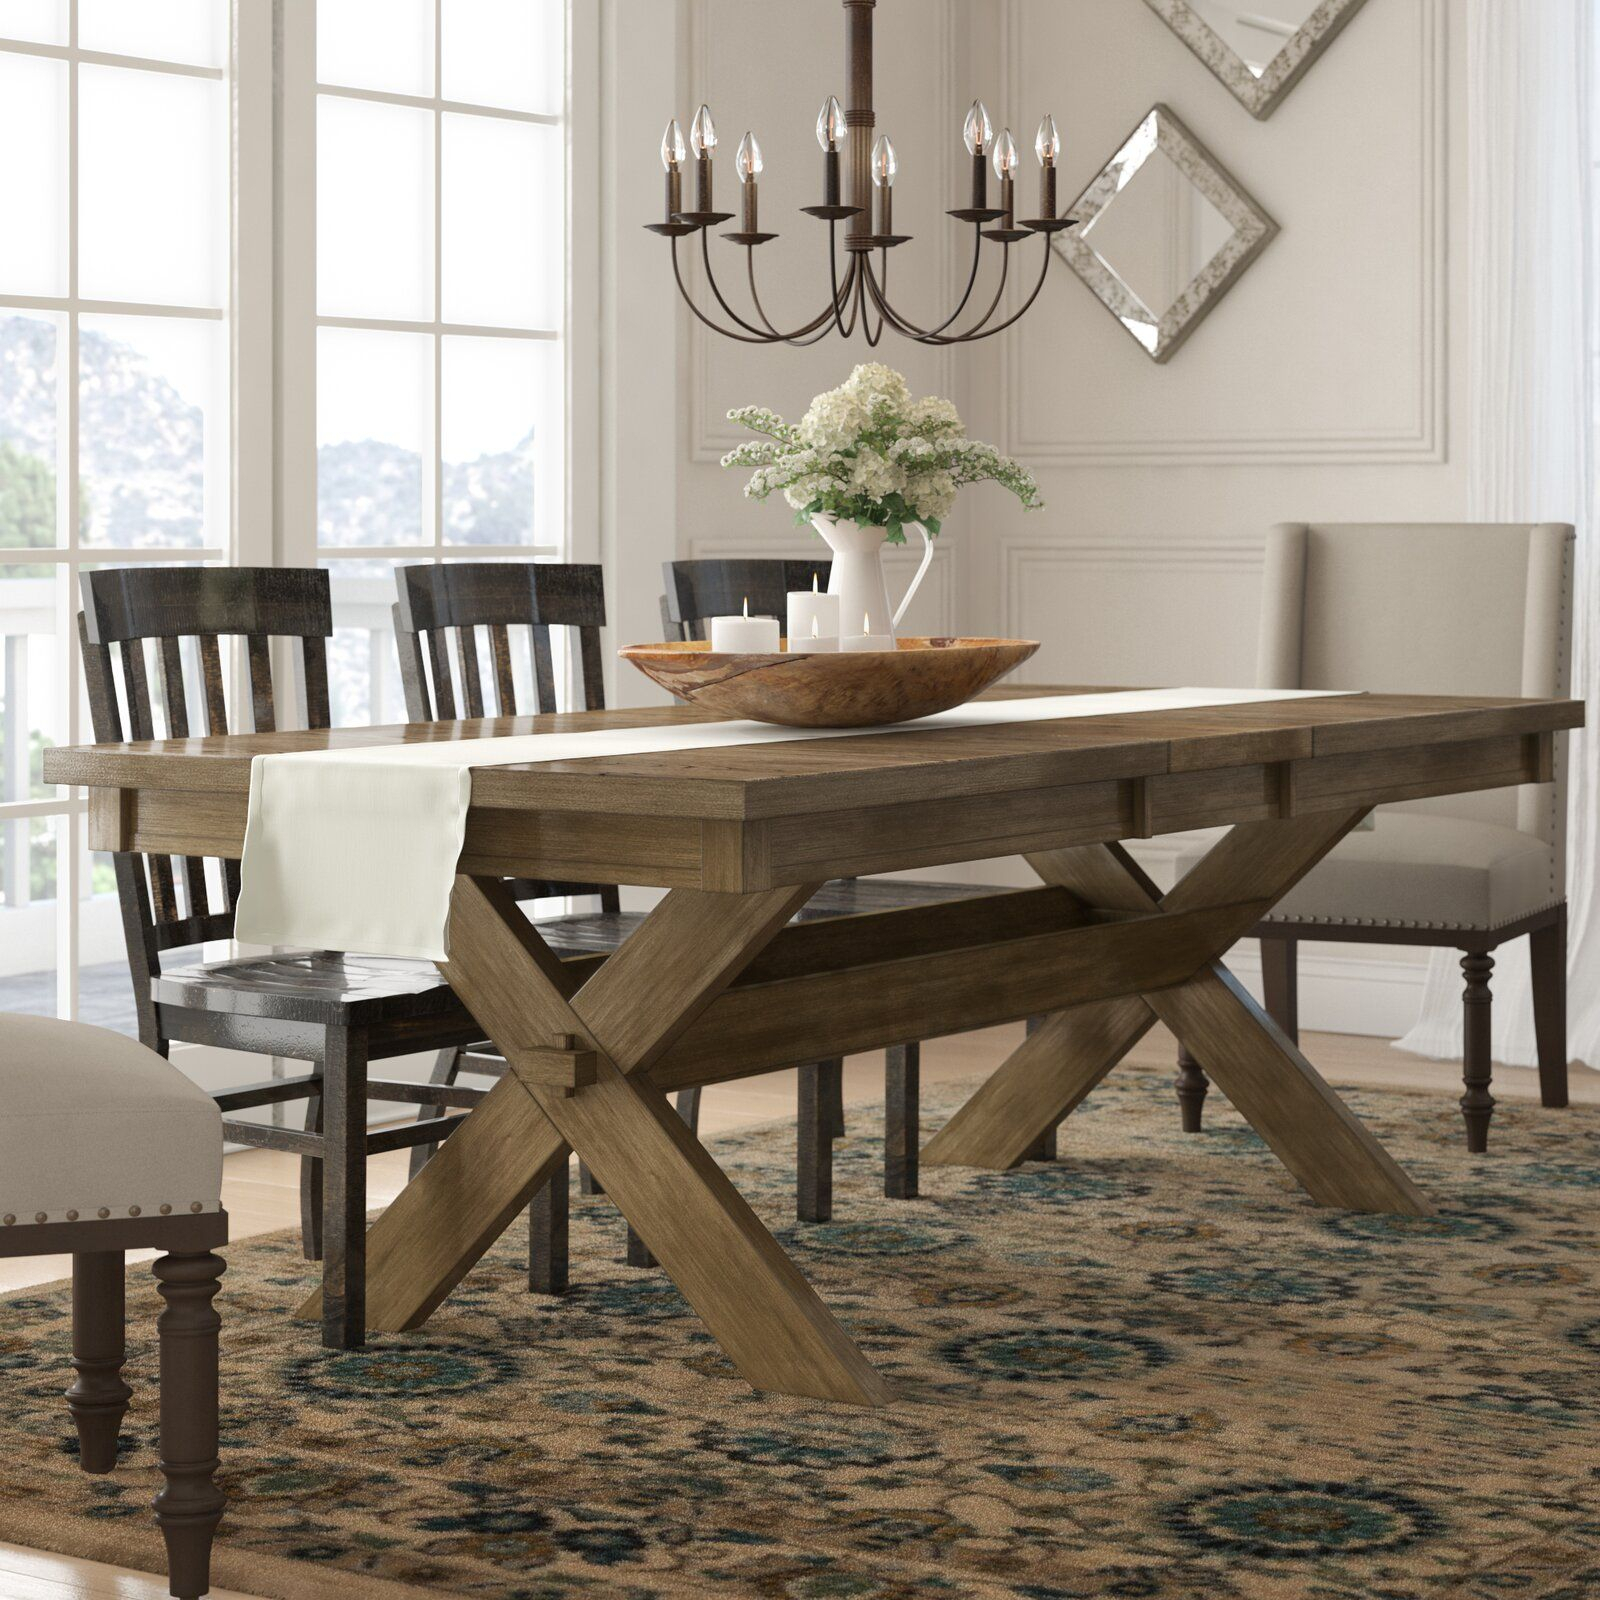 Gracie Oaks Poe Cross Buck Extendable Dining Table | Home Intended For Current Rustic Brown Lorraine Extending Dining Tables (View 15 of 25)